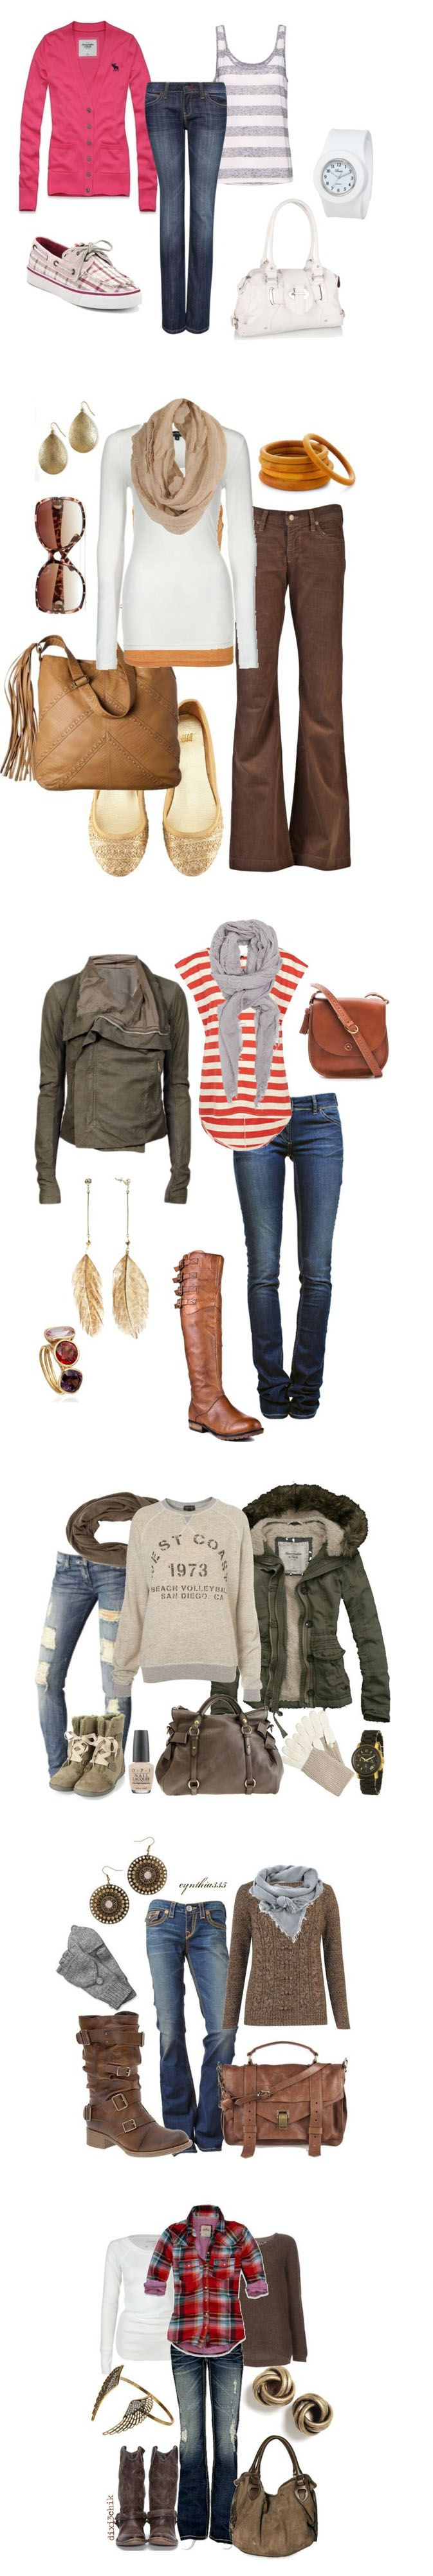 I like the chocolate brown jeans/pants, the scarves, the tan purse, the rose colored outfit. most of it is so me!